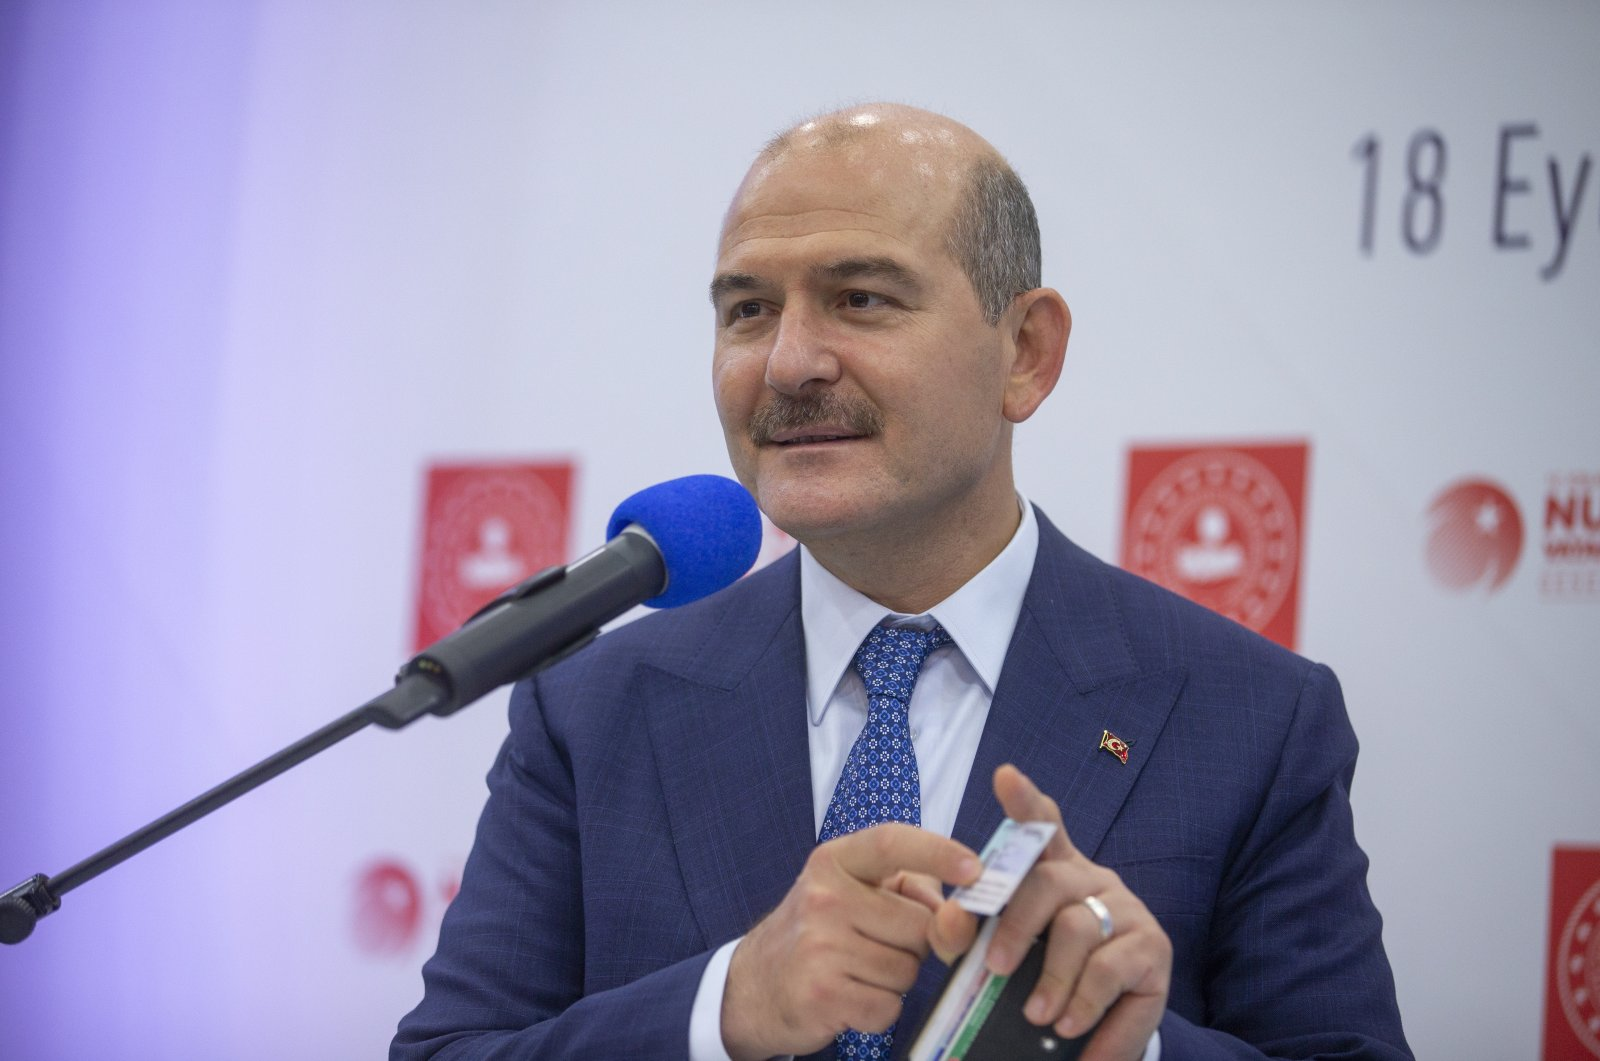 """Interior Minister Süleyman Soylu shows his ID card as he explains the details of """"Your Life is Easier with Your ID"""" project in a press conference in Ankara, Turkey, Sept. 18, 2020. (AA Photo)"""